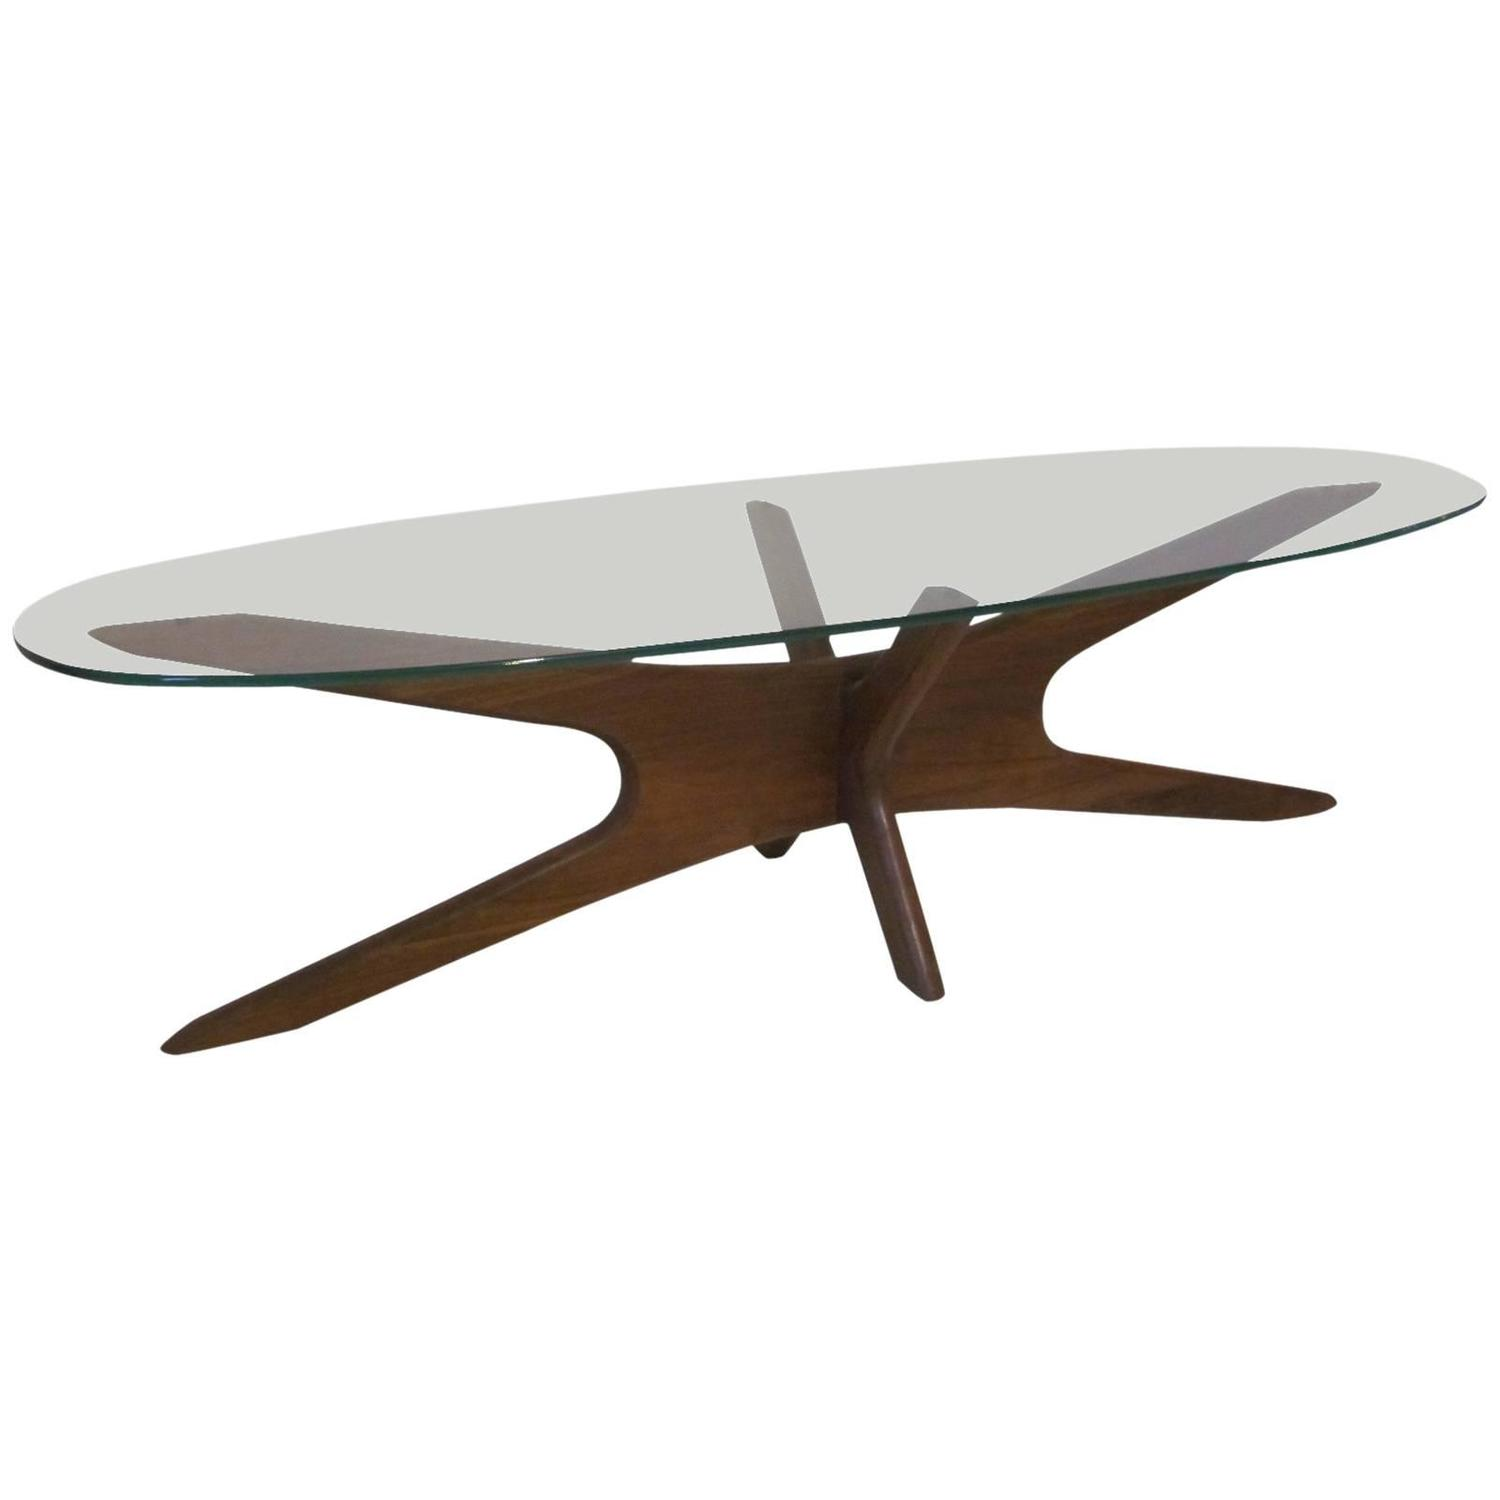 Https Www 1stdibs Com Furniture Tables Coffee Tables Cocktail Tables Adrian Pearsall Jacks Coffee Table Id F 3767532